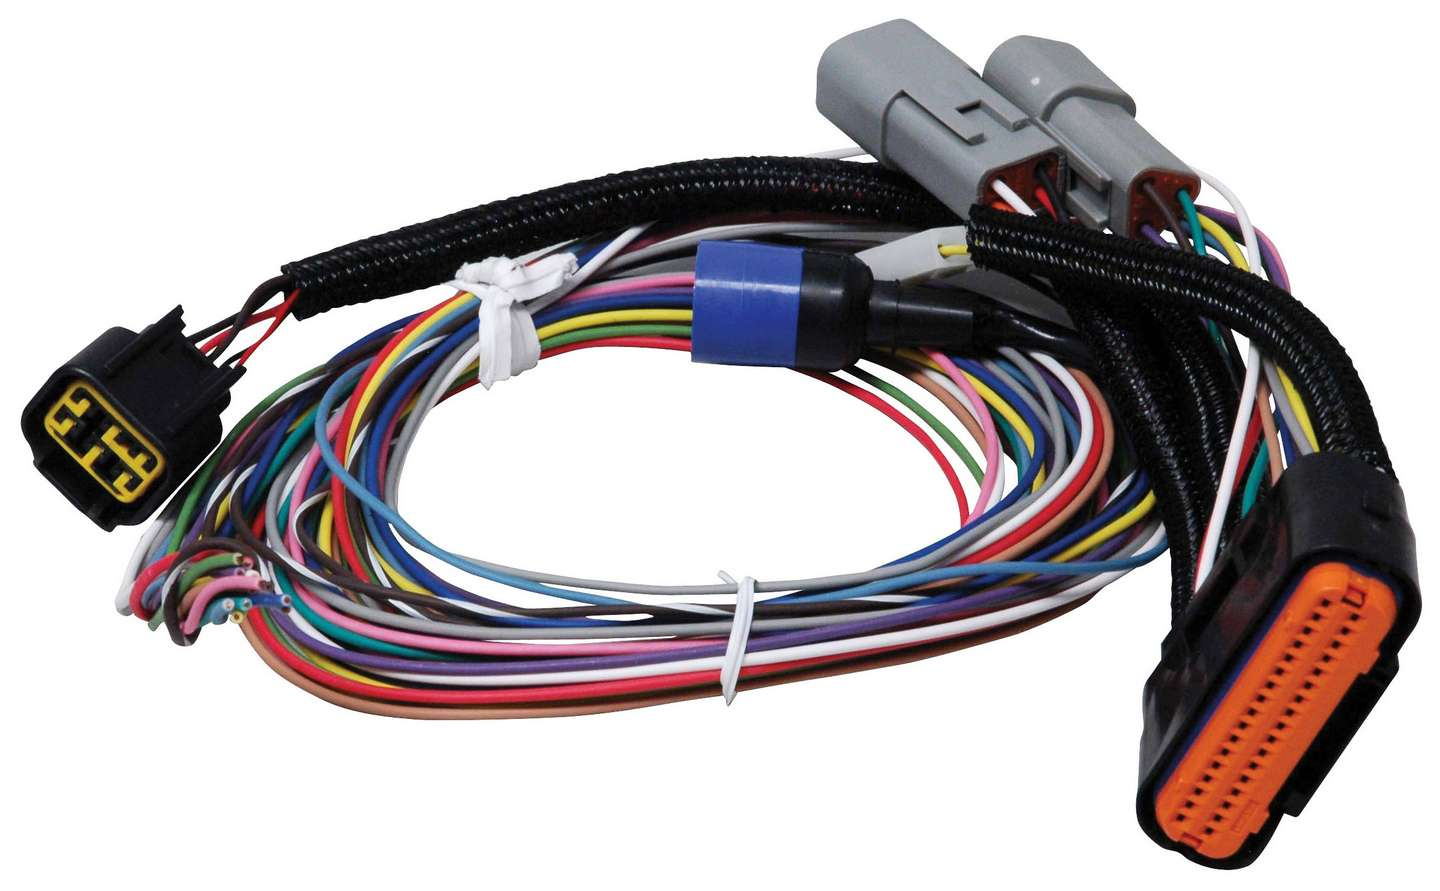 Msd 8860 Wiring Harness Library Replacement 7730 Power Grid Ignition